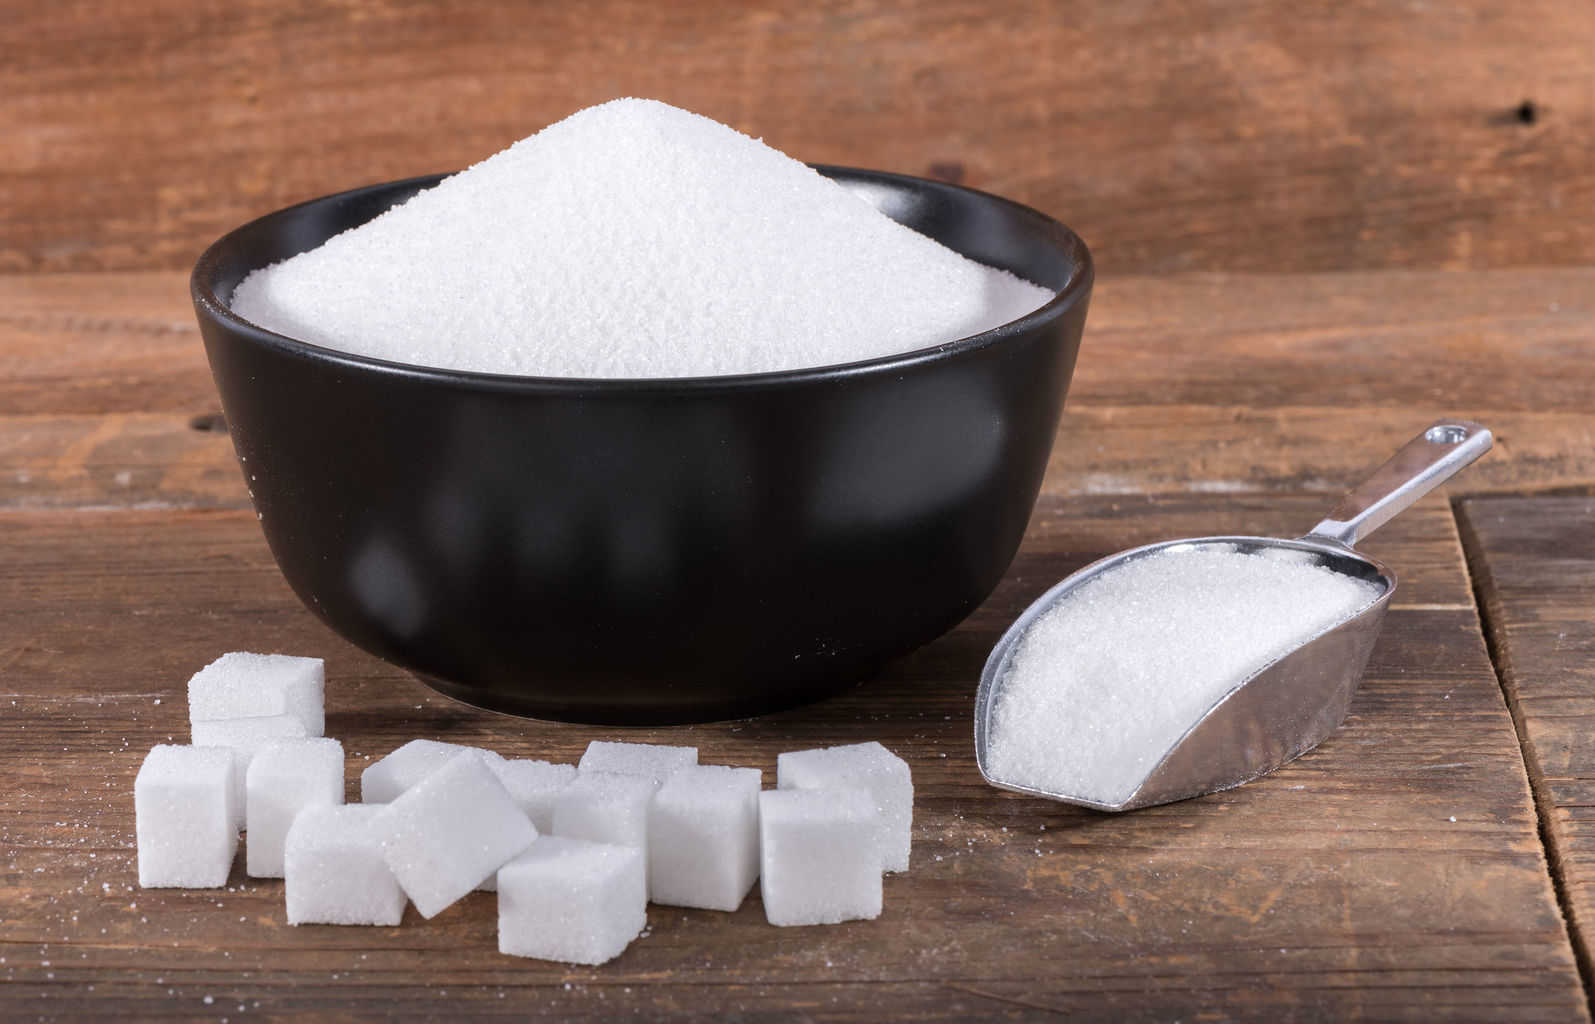 Sugar and starch for metabolism